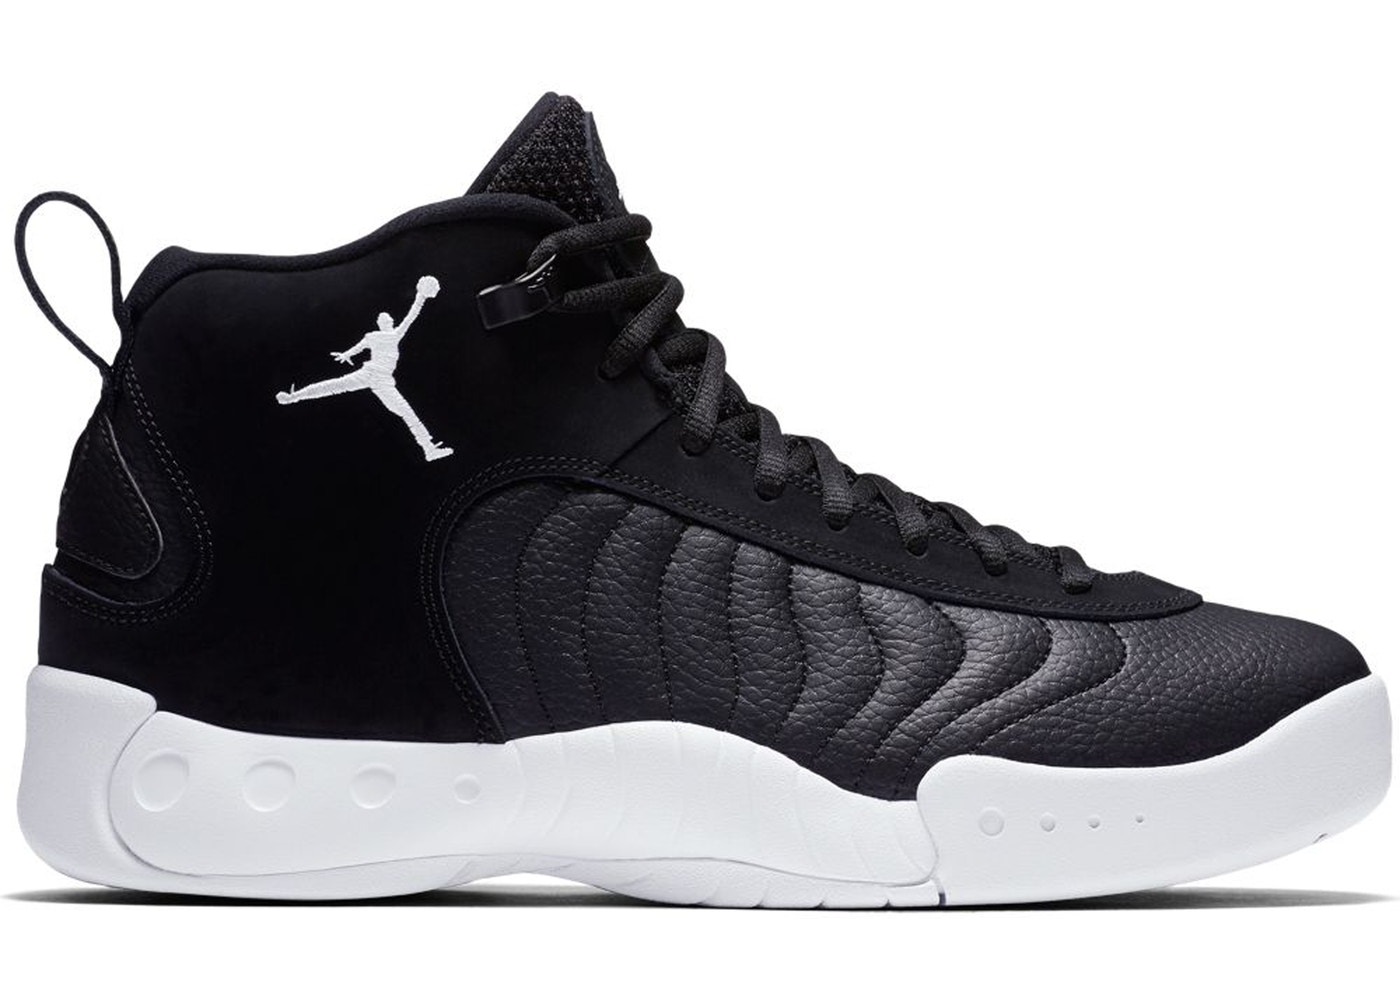 462a6ae20e5d4 Sell. or Ask. Size  11.5. View All Bids. Jordan Jumpman Pro Black White